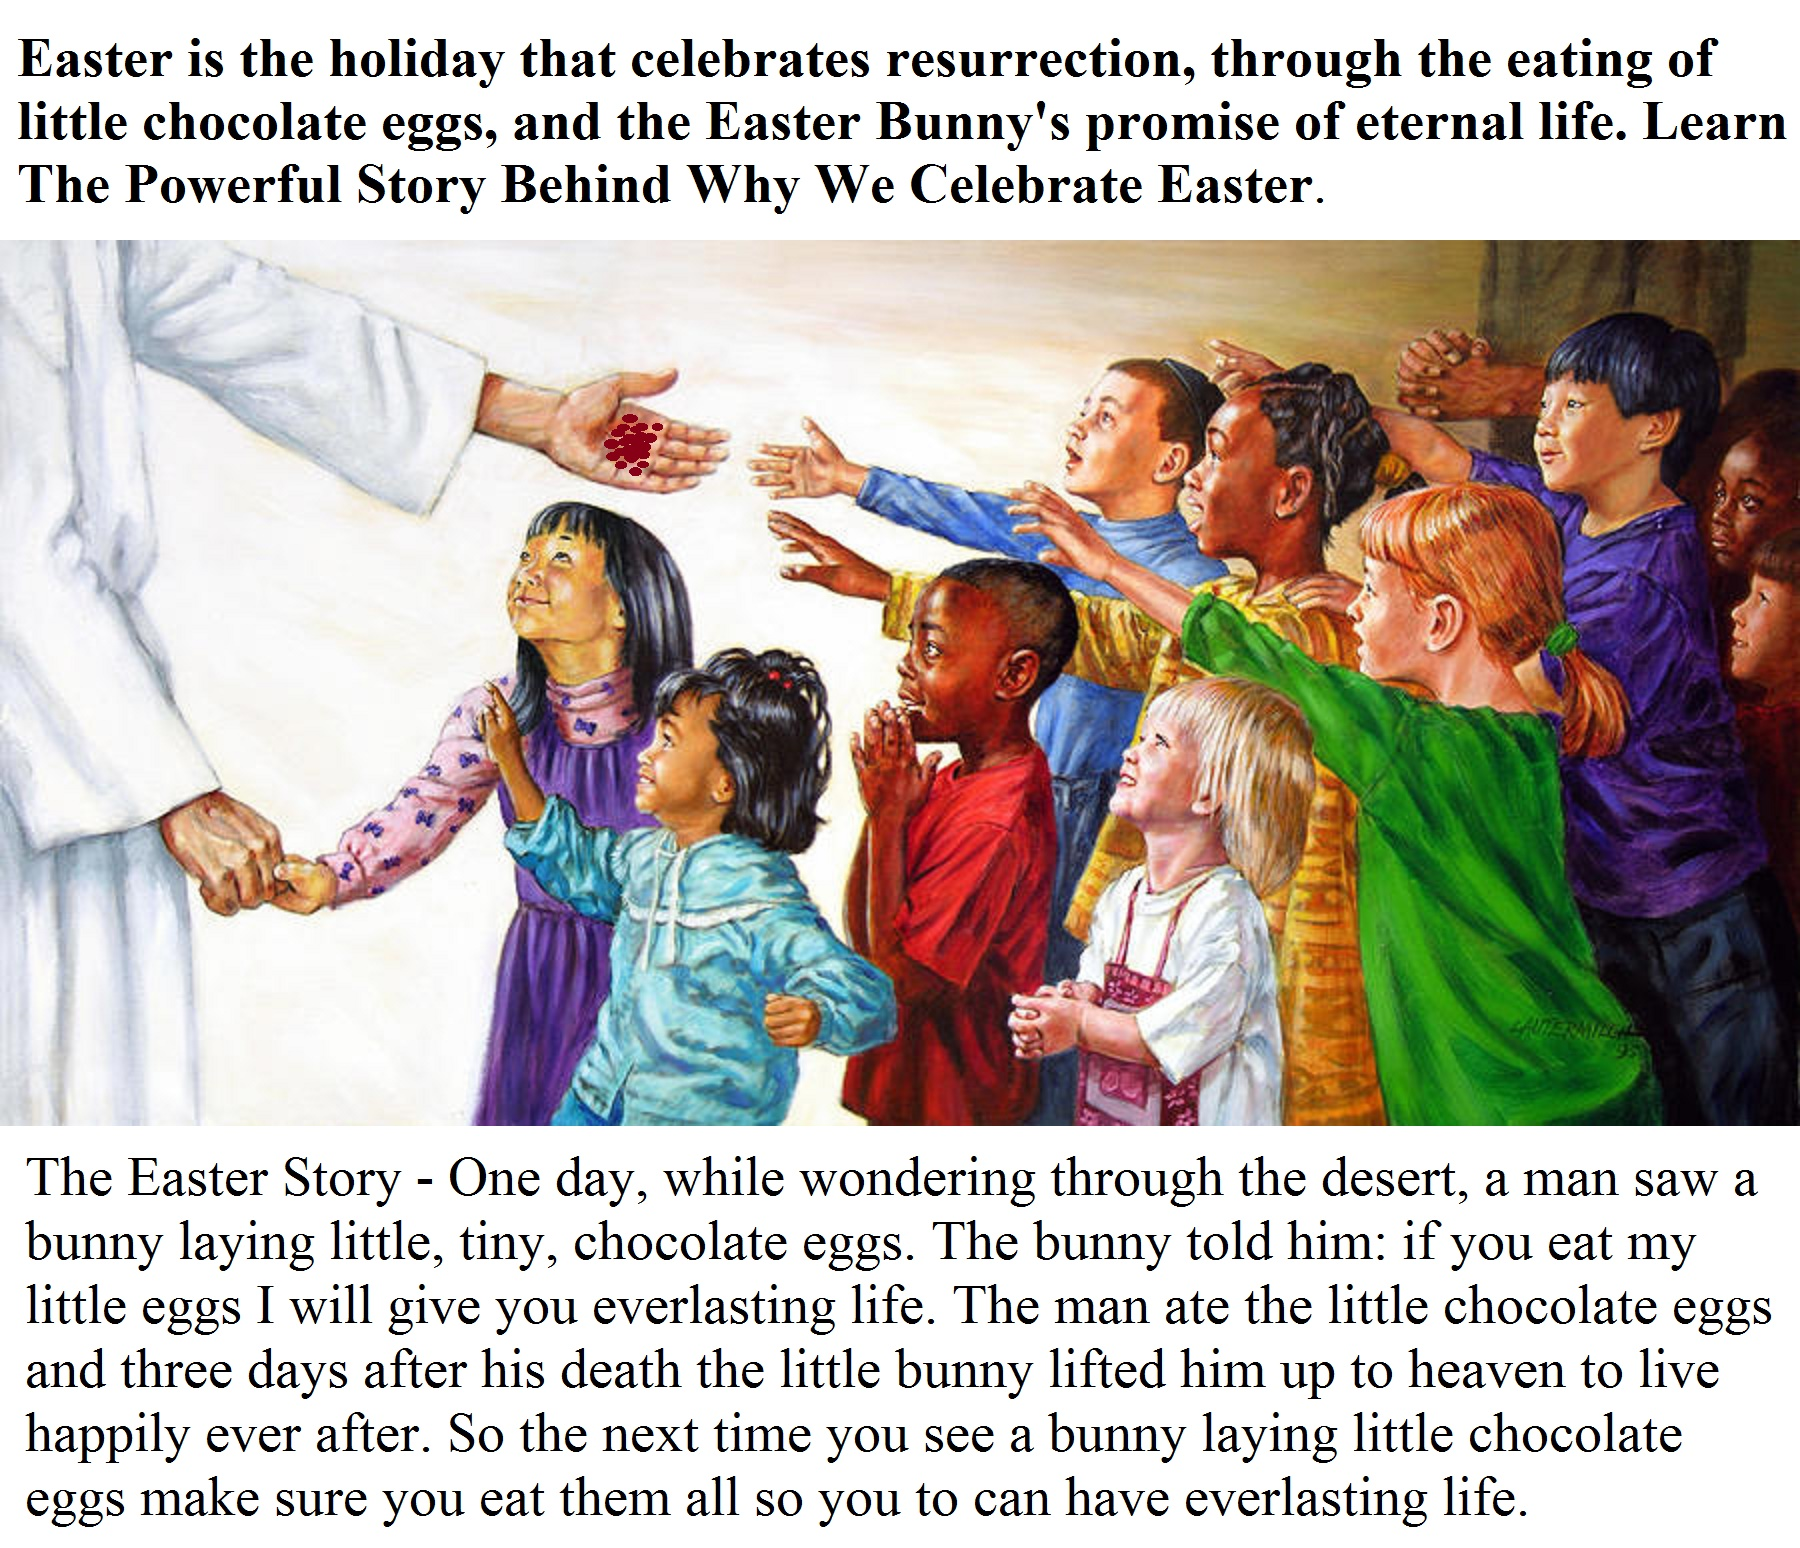 Easter is the holiday that celebrates resurrection, through the eating of little chocolate eggs, and the Easter Bunny's promise of eternal life. Learn The Powerful Story Behind Why We Celebrate Easter.